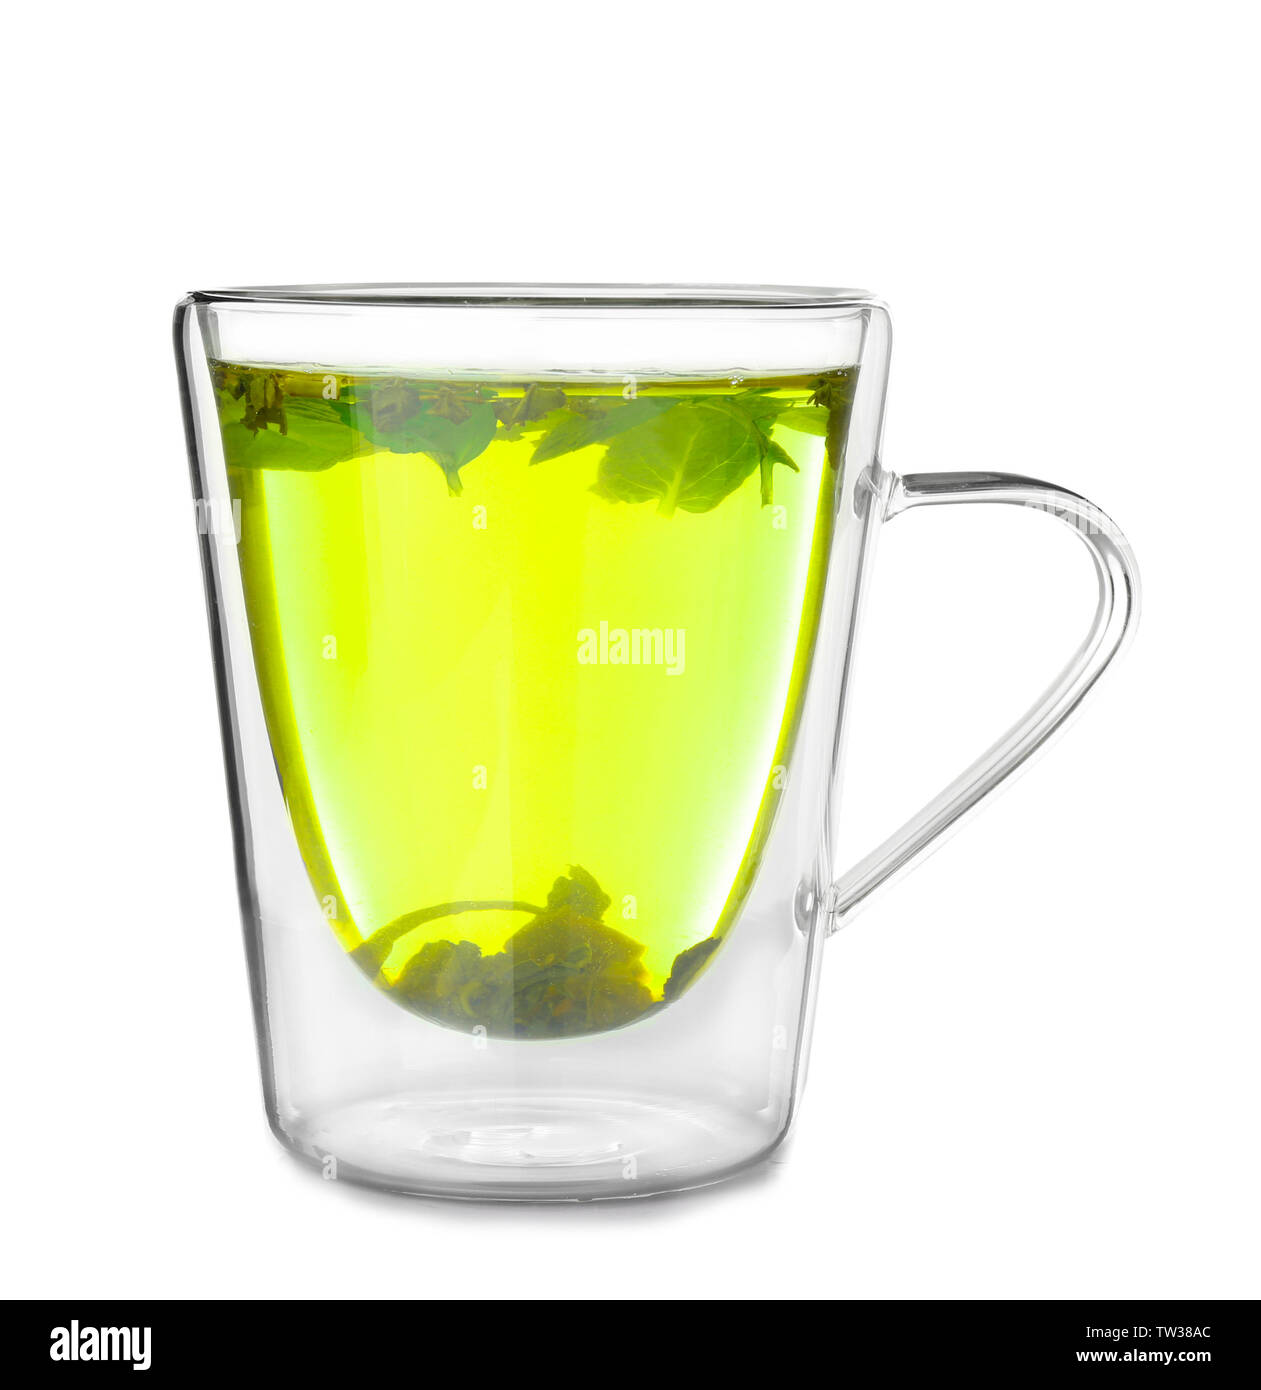 Cup of hot tasty tea with lemon balm on white background - Stock Image